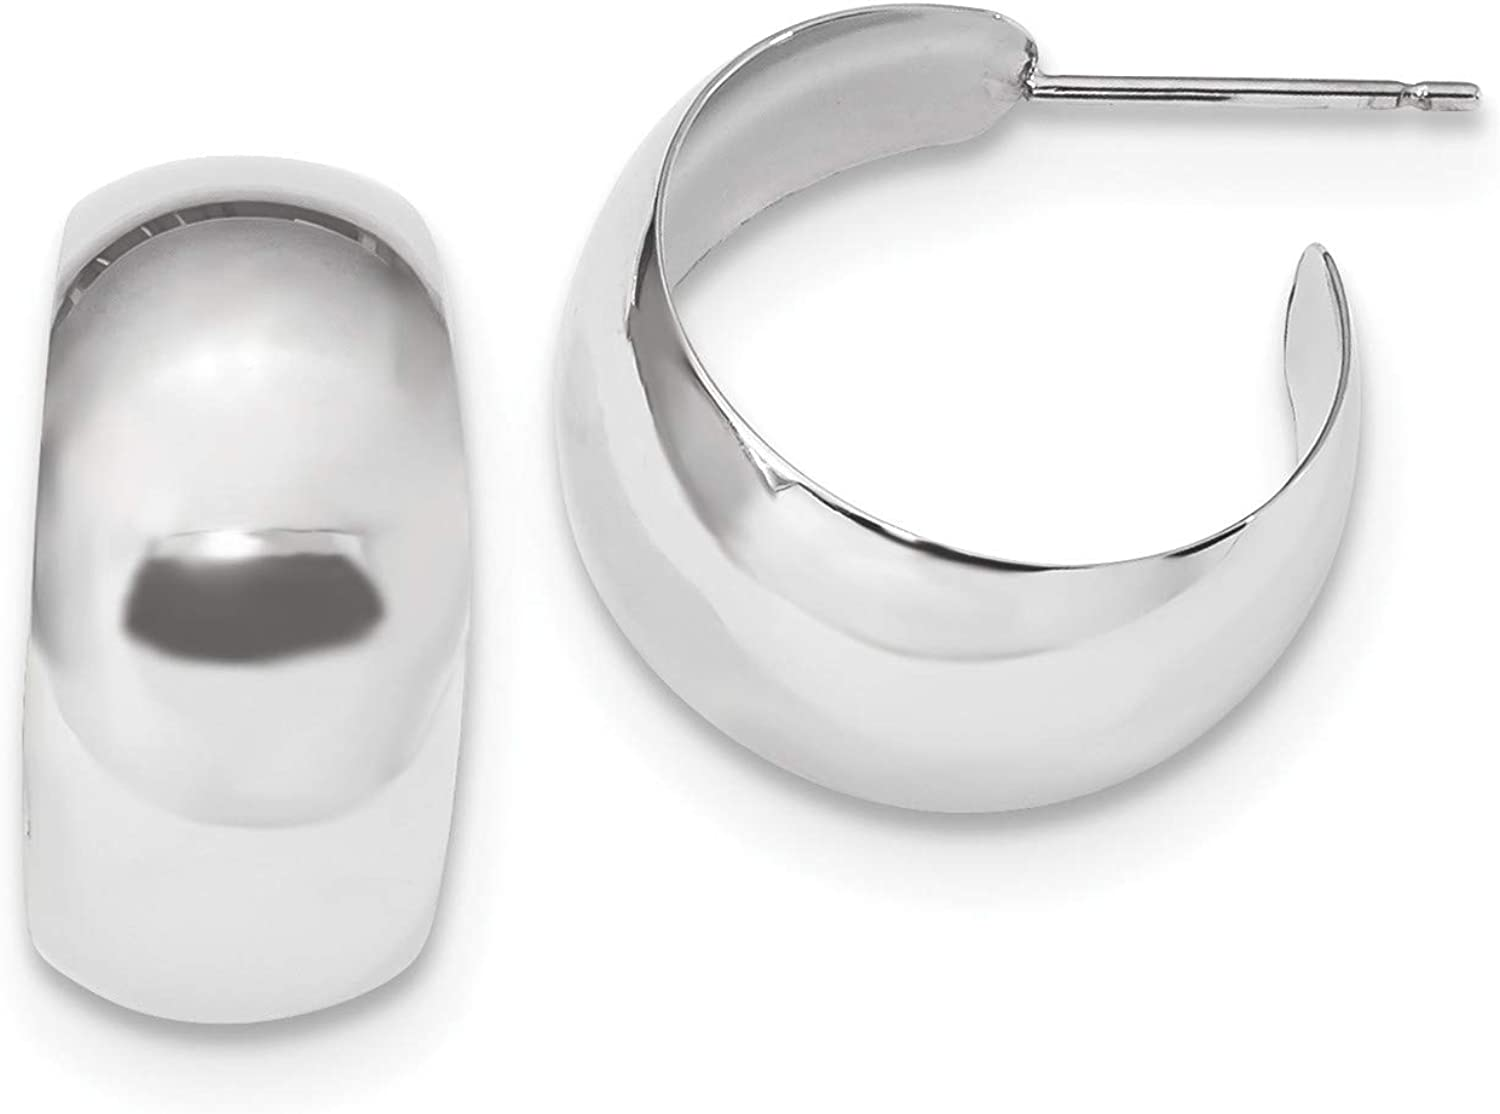 14k White Gold 5 ☆ very popular Small Earrings Max 86% OFF Hoop